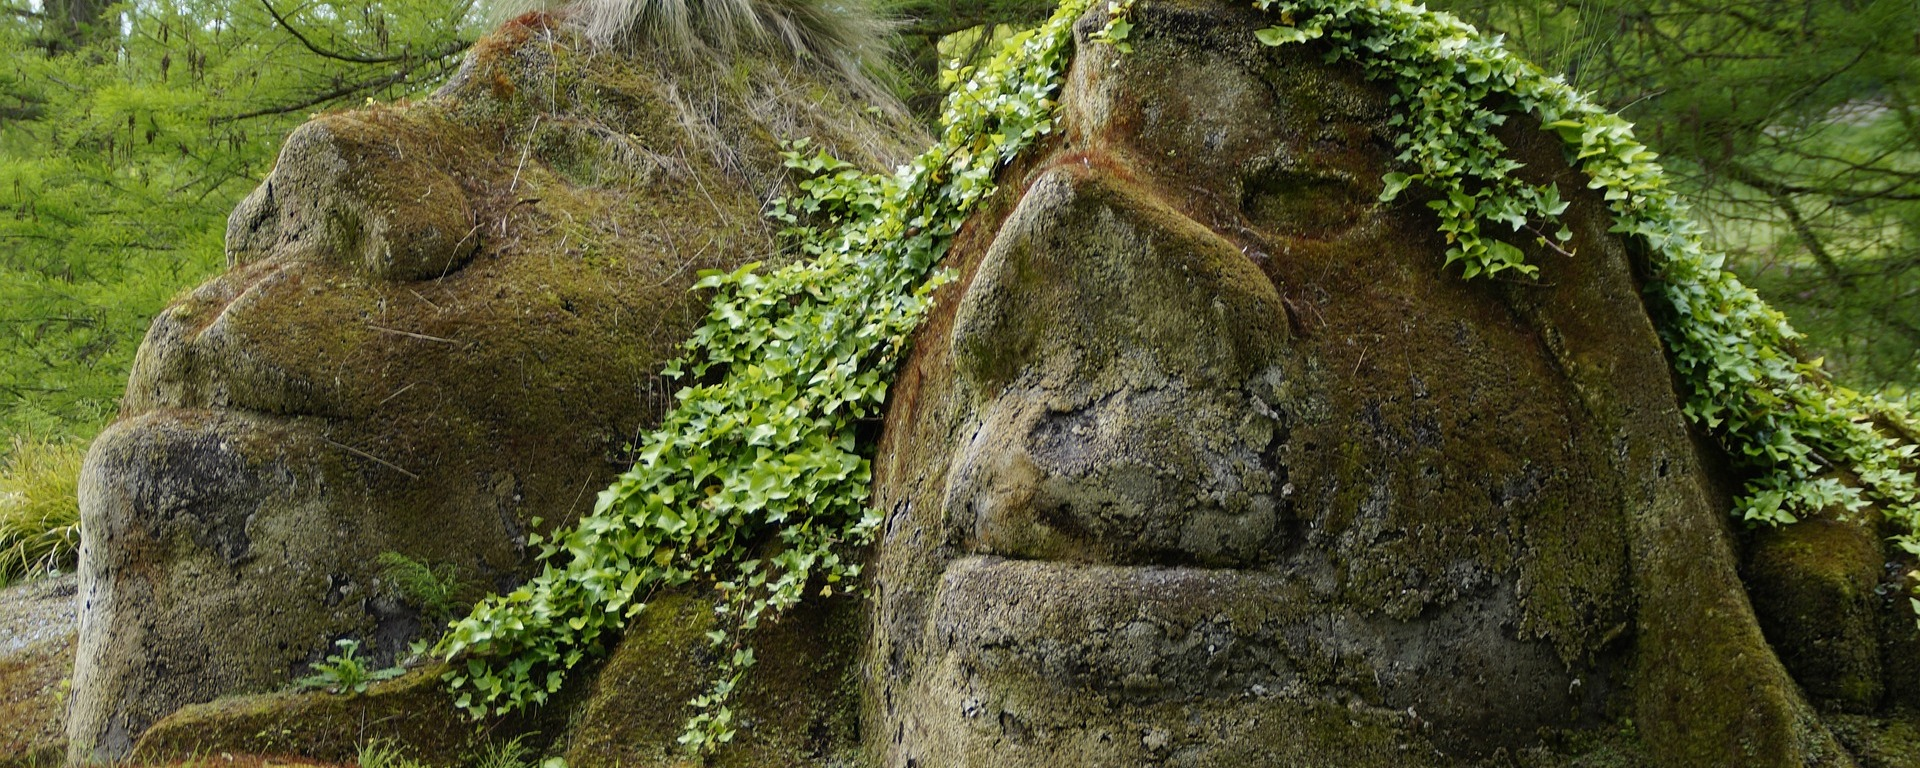 control,gnome,troll,mythical creatures,fairy tales,bemoost,mossy,moss covered,moss,fouling,ivy,pair,man and woman,stone,sculpture,artwork,head,portrait,face,heads,nature,riesen,man,woman,two,mainau island,mainau,lake constance,nature spirits,iceland,huge,stone giant,petrified,fables,popular belief,superstition,nature worship,elves,spirit,force,place of power,new age, DON CHARISMA